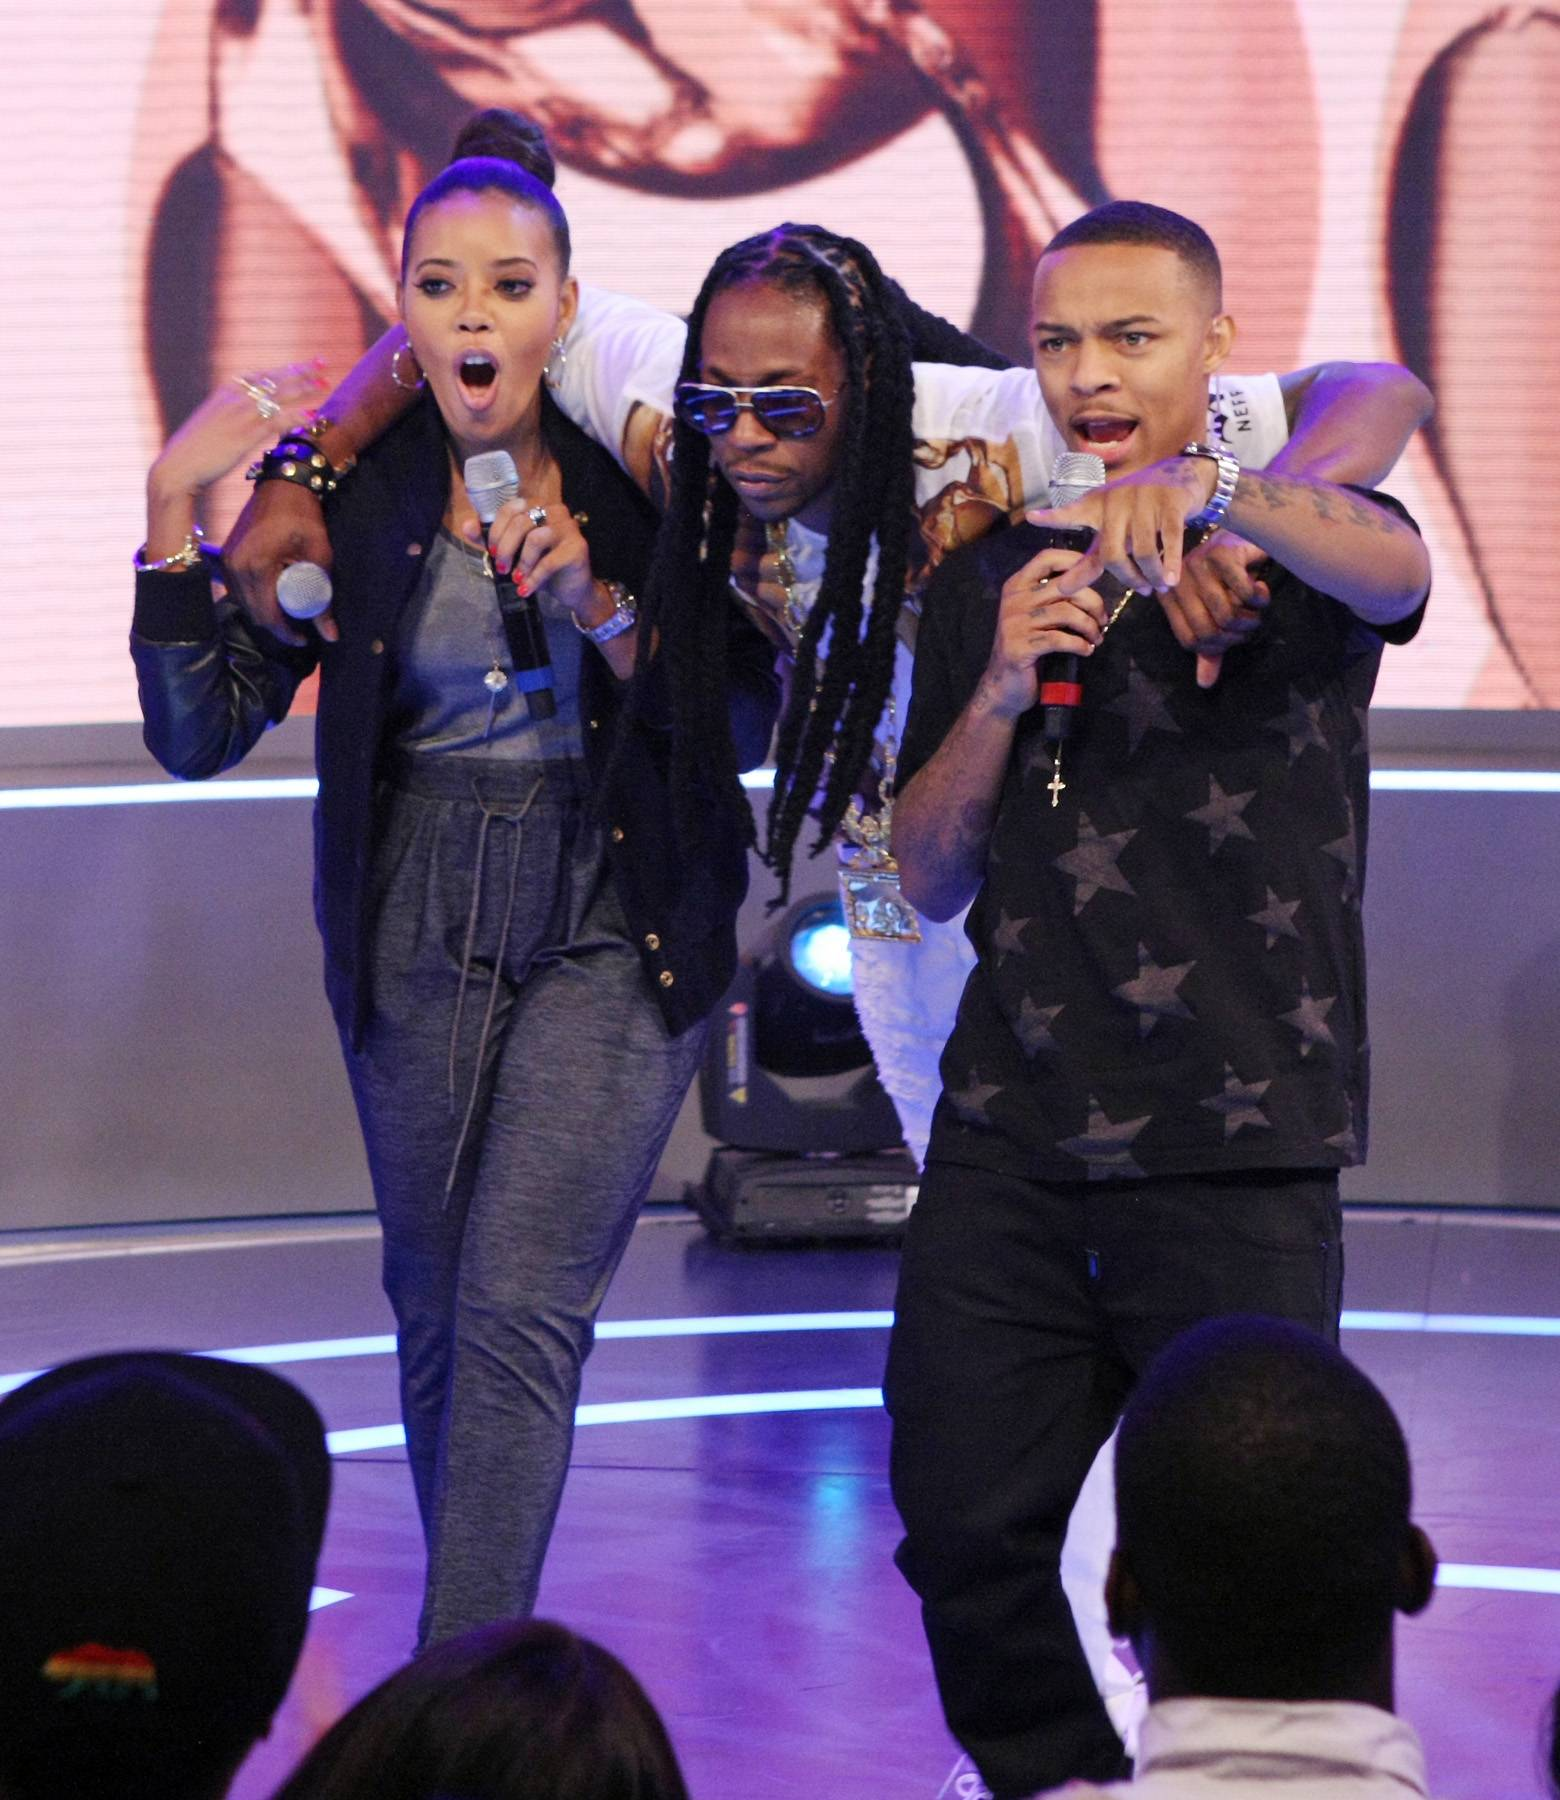 Whoa! - Angela Simmons, 2 Chainz and Bow Wow hug it out on the 106 stage. (Photo: Bennett Raglin/BET/Getty Images for BET)